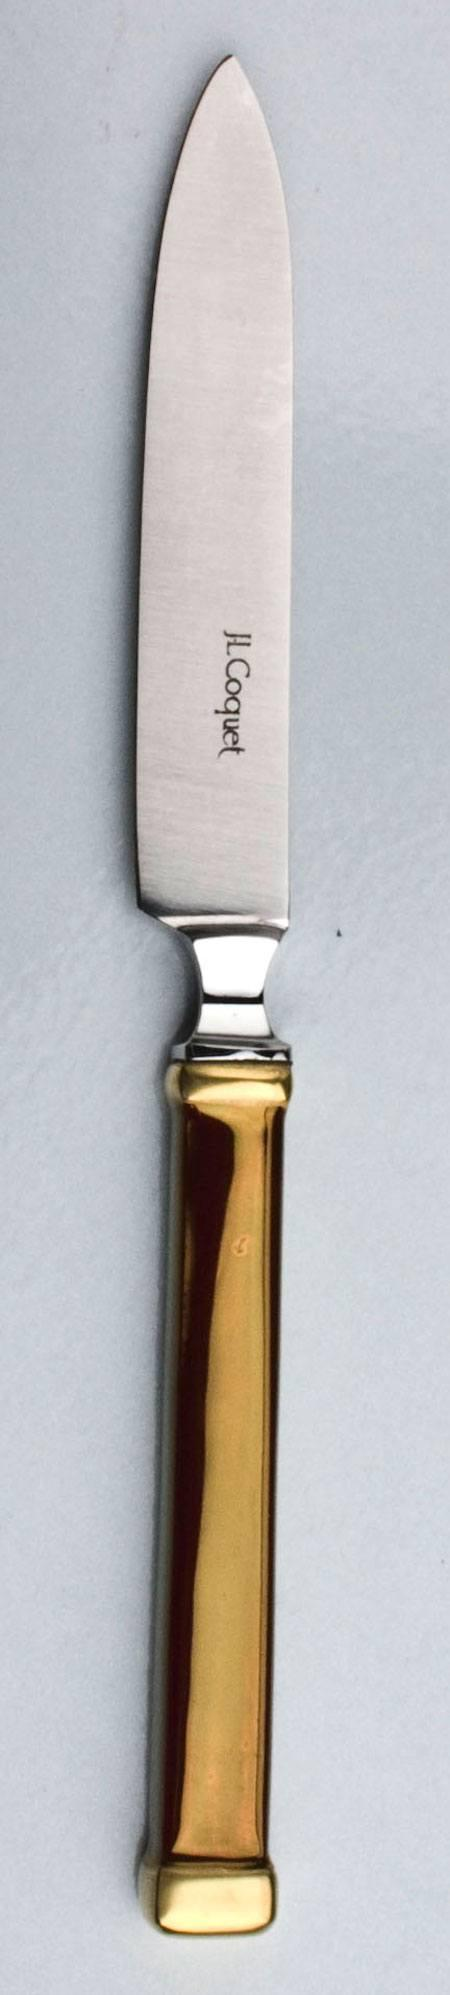 Tango Dessert Knife collection with 1 products